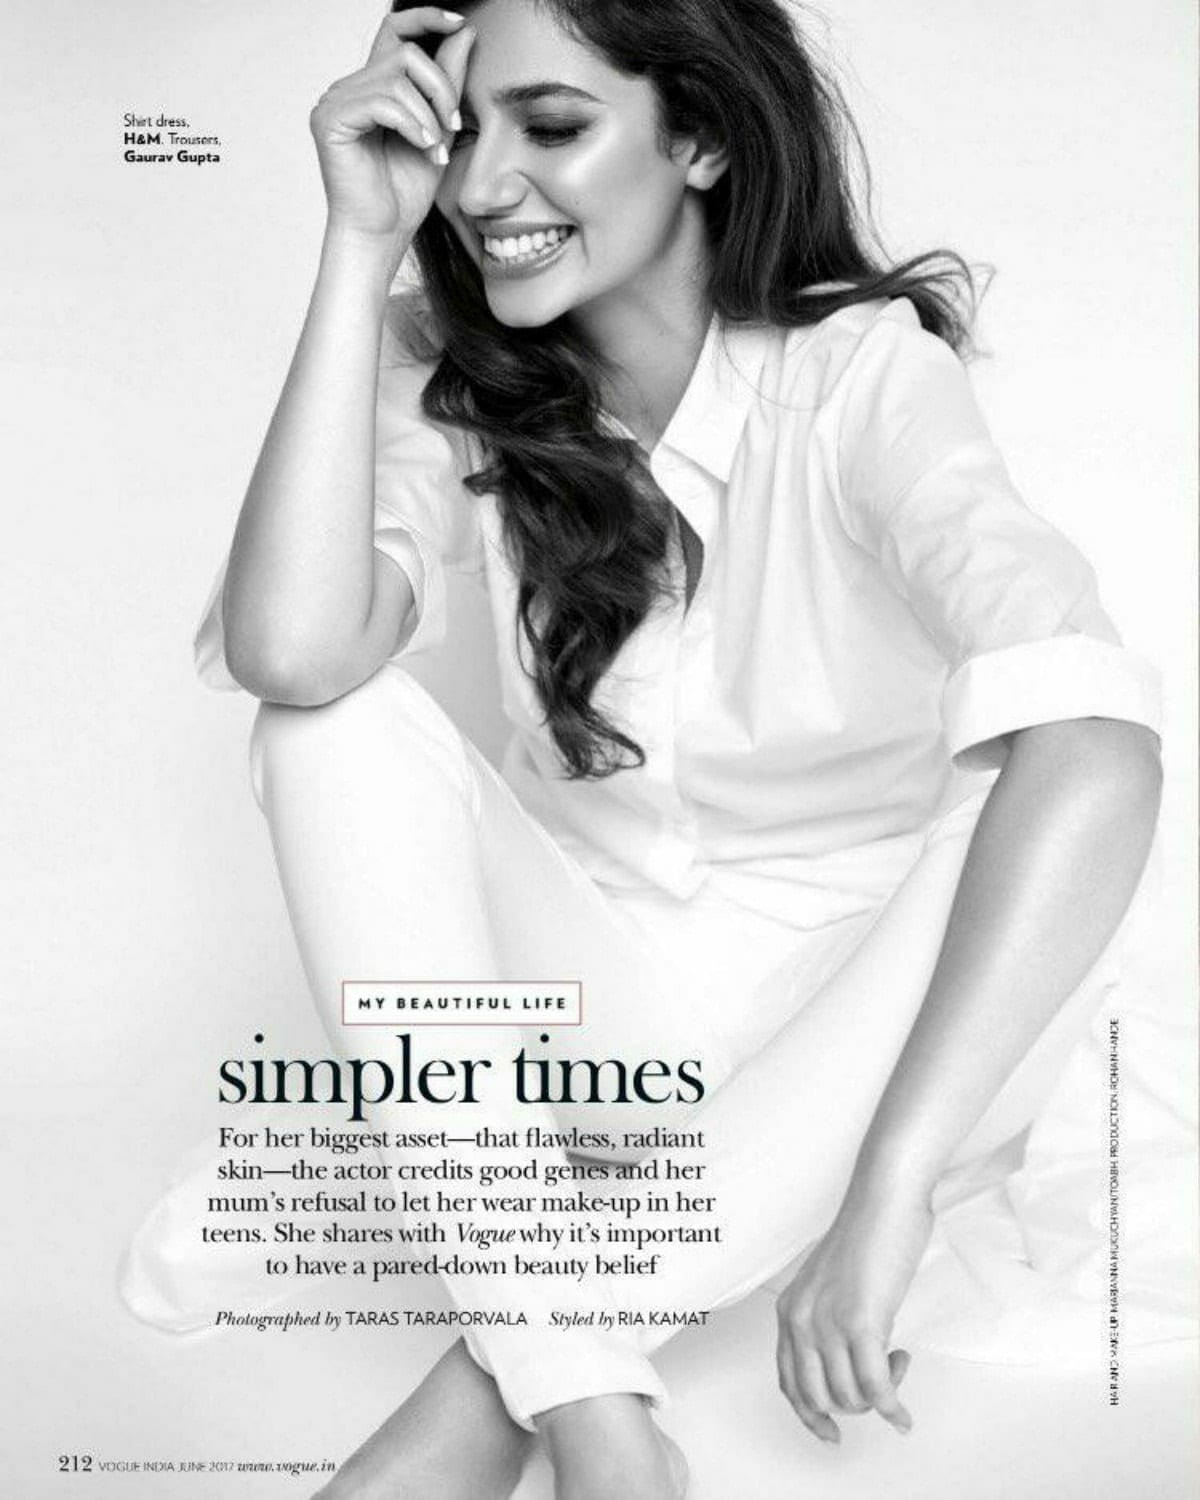 Mahira Khan Vogue India Magzine - Mahira Khan shares her beauty secrets in Vogue India Shoot